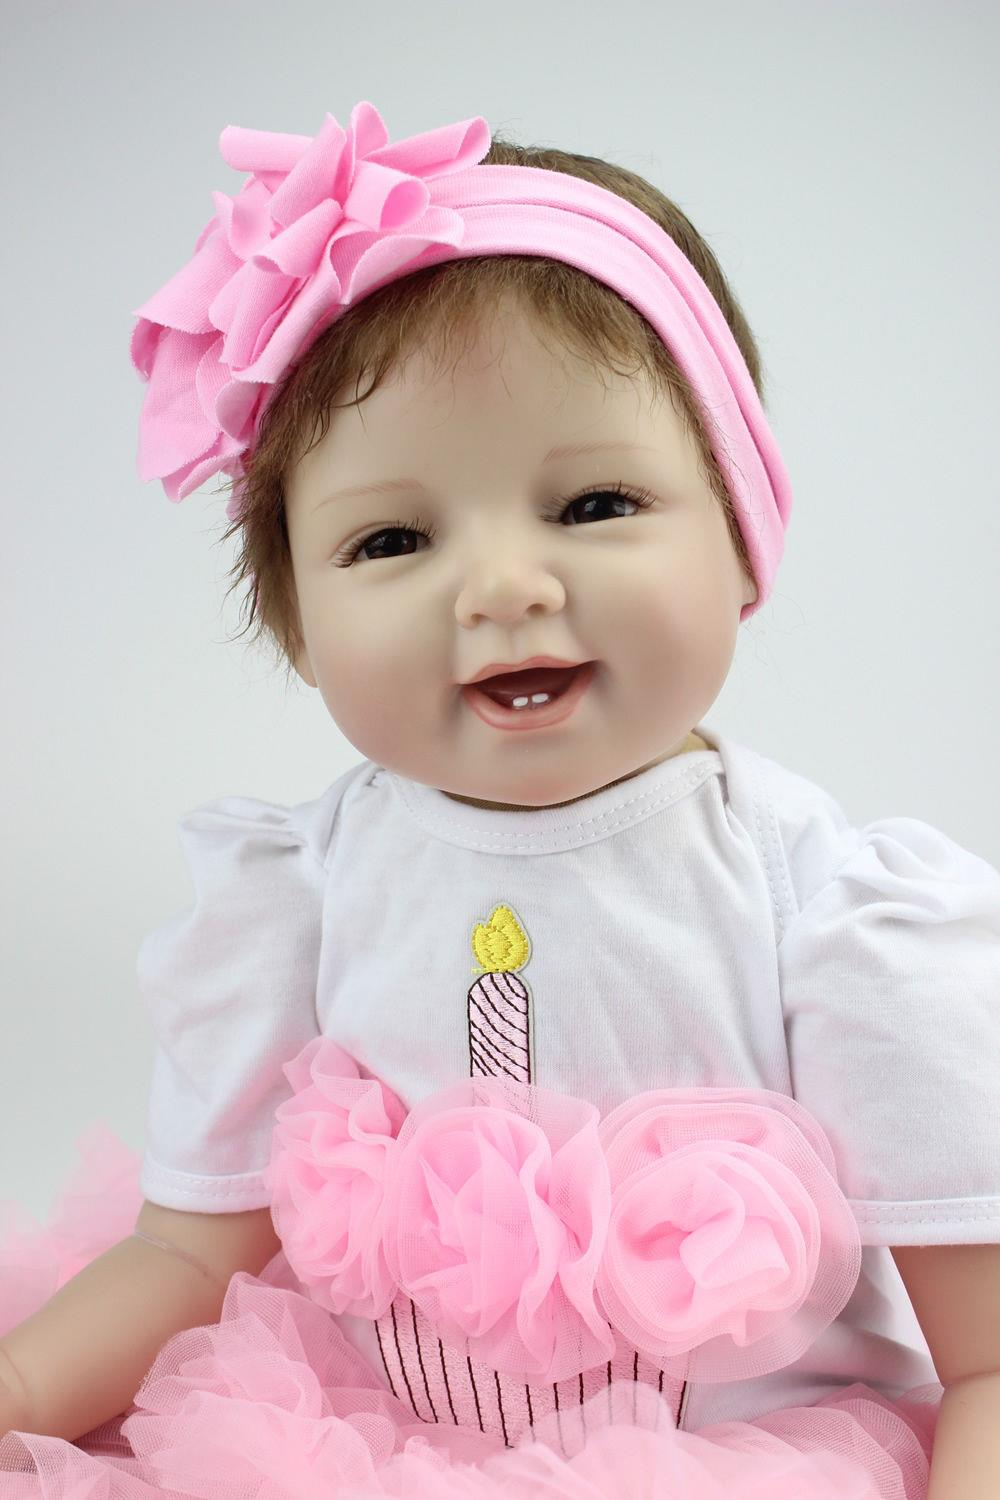 кукла Realistic Lifelike Reborn Baby Doll 22 handmade silicone soft reborn dolls baby girl 22 inch lifelike princess babies doll toy with crown dress kids birthday xmas gift